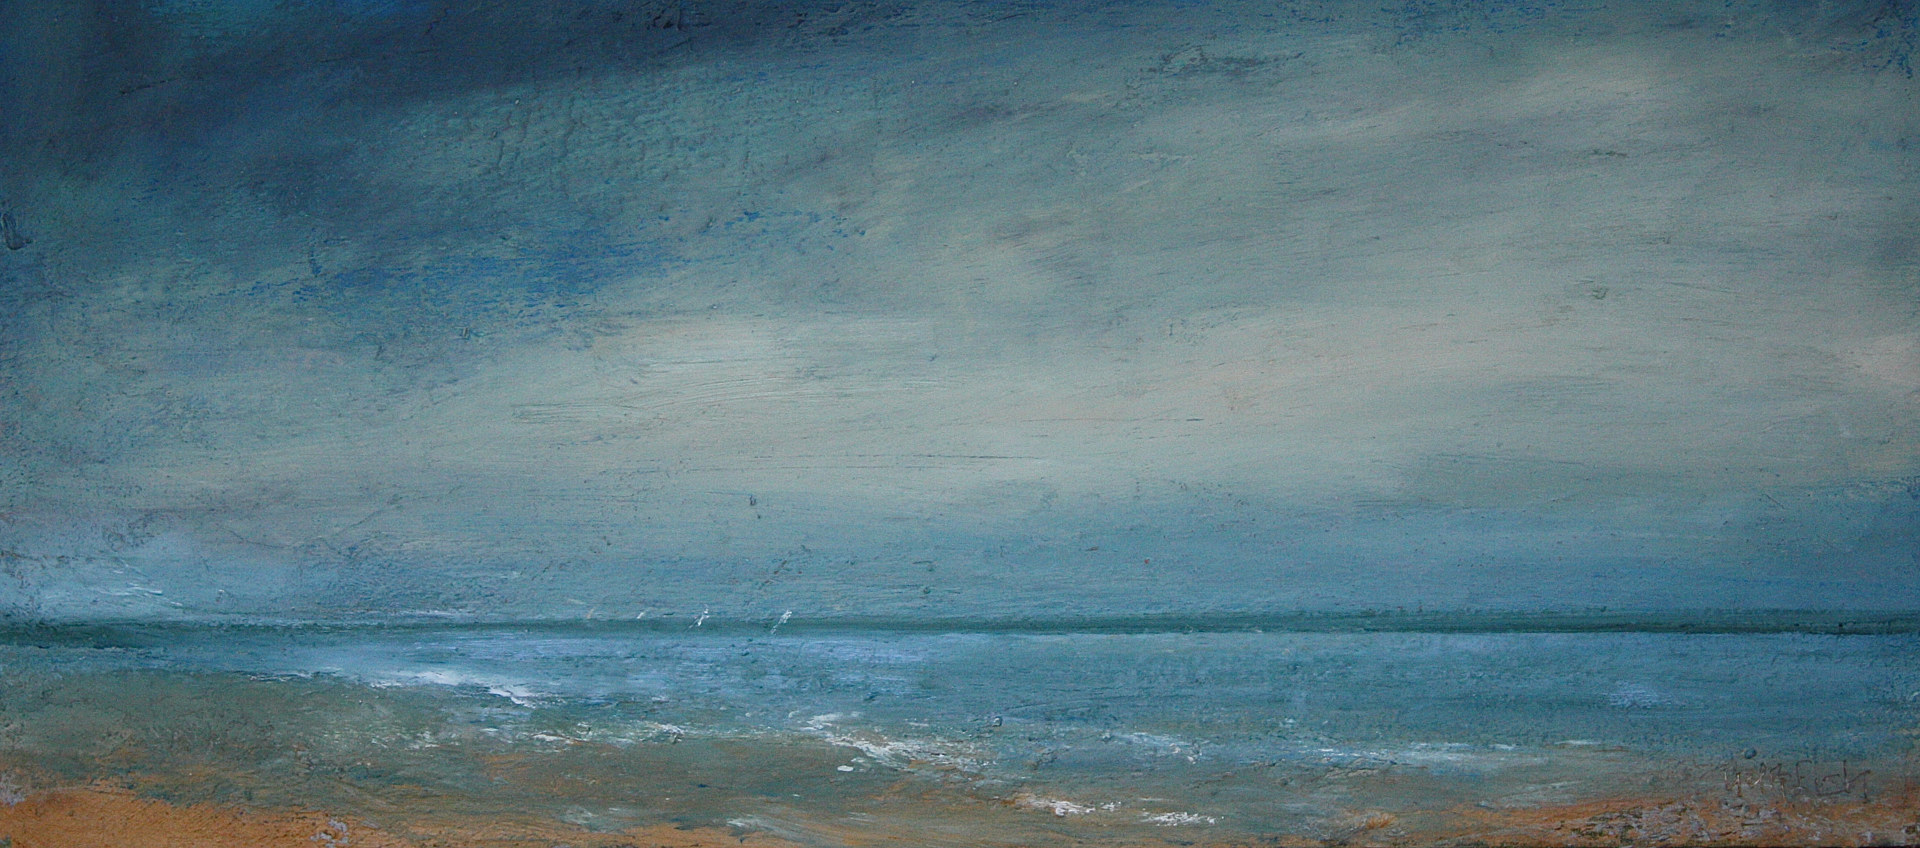 Oil painting Good Wind @ Cortile Gallery, Ptown by Nella Lush